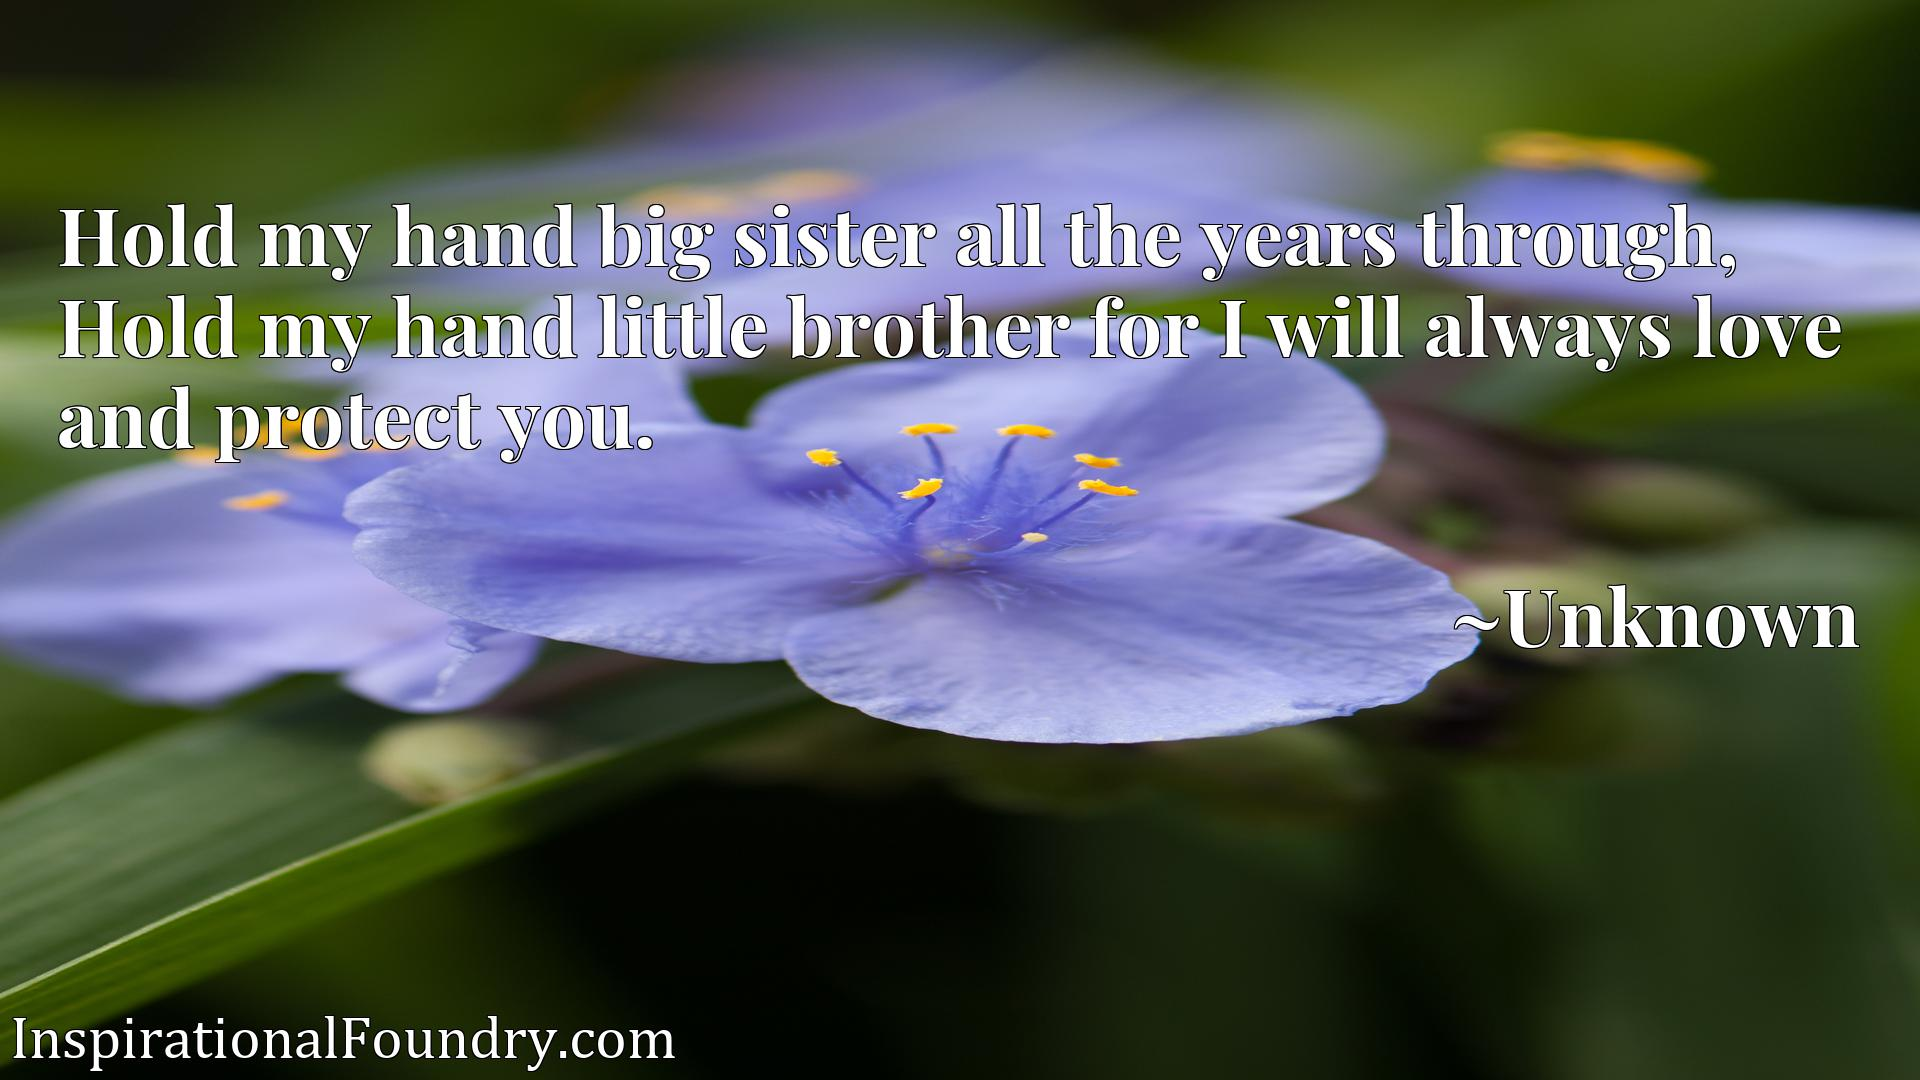 Hold my hand big sister all the years through, Hold my hand little brother for I will always love and protect you.